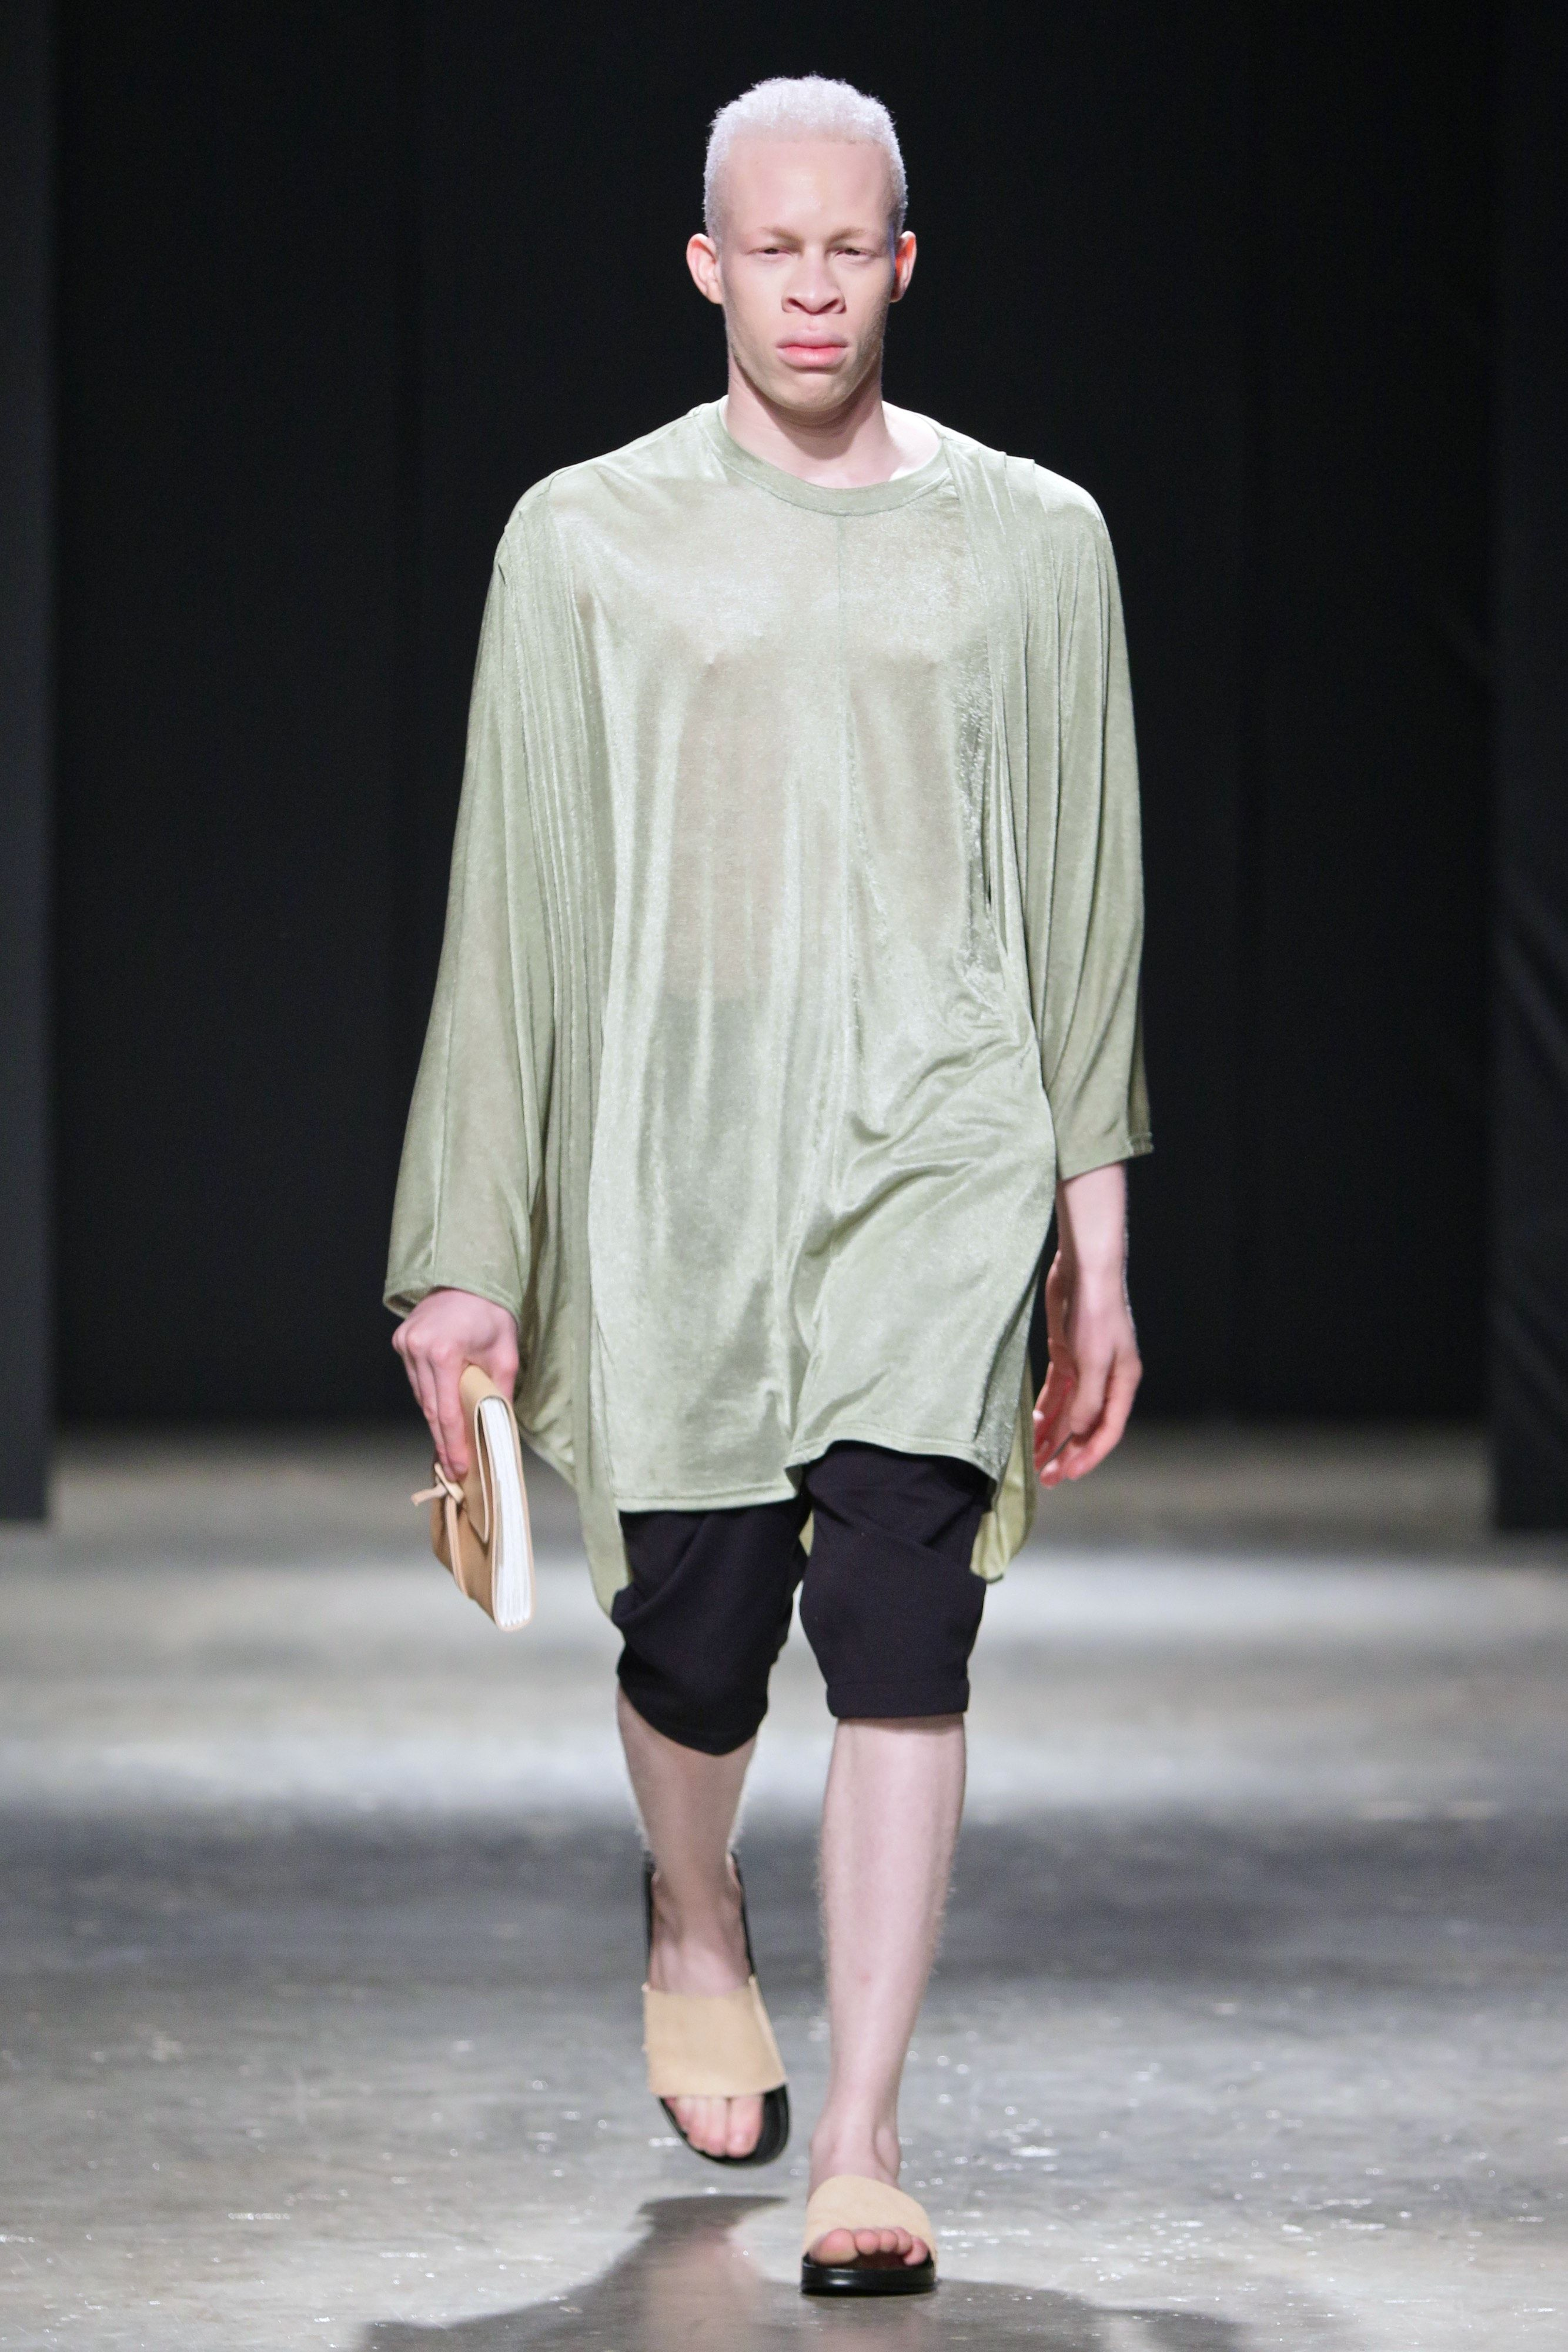 Merwe Mode South Africa Menswear Week - #Trends #Tendencias #Moda Hombre - SDR Photo